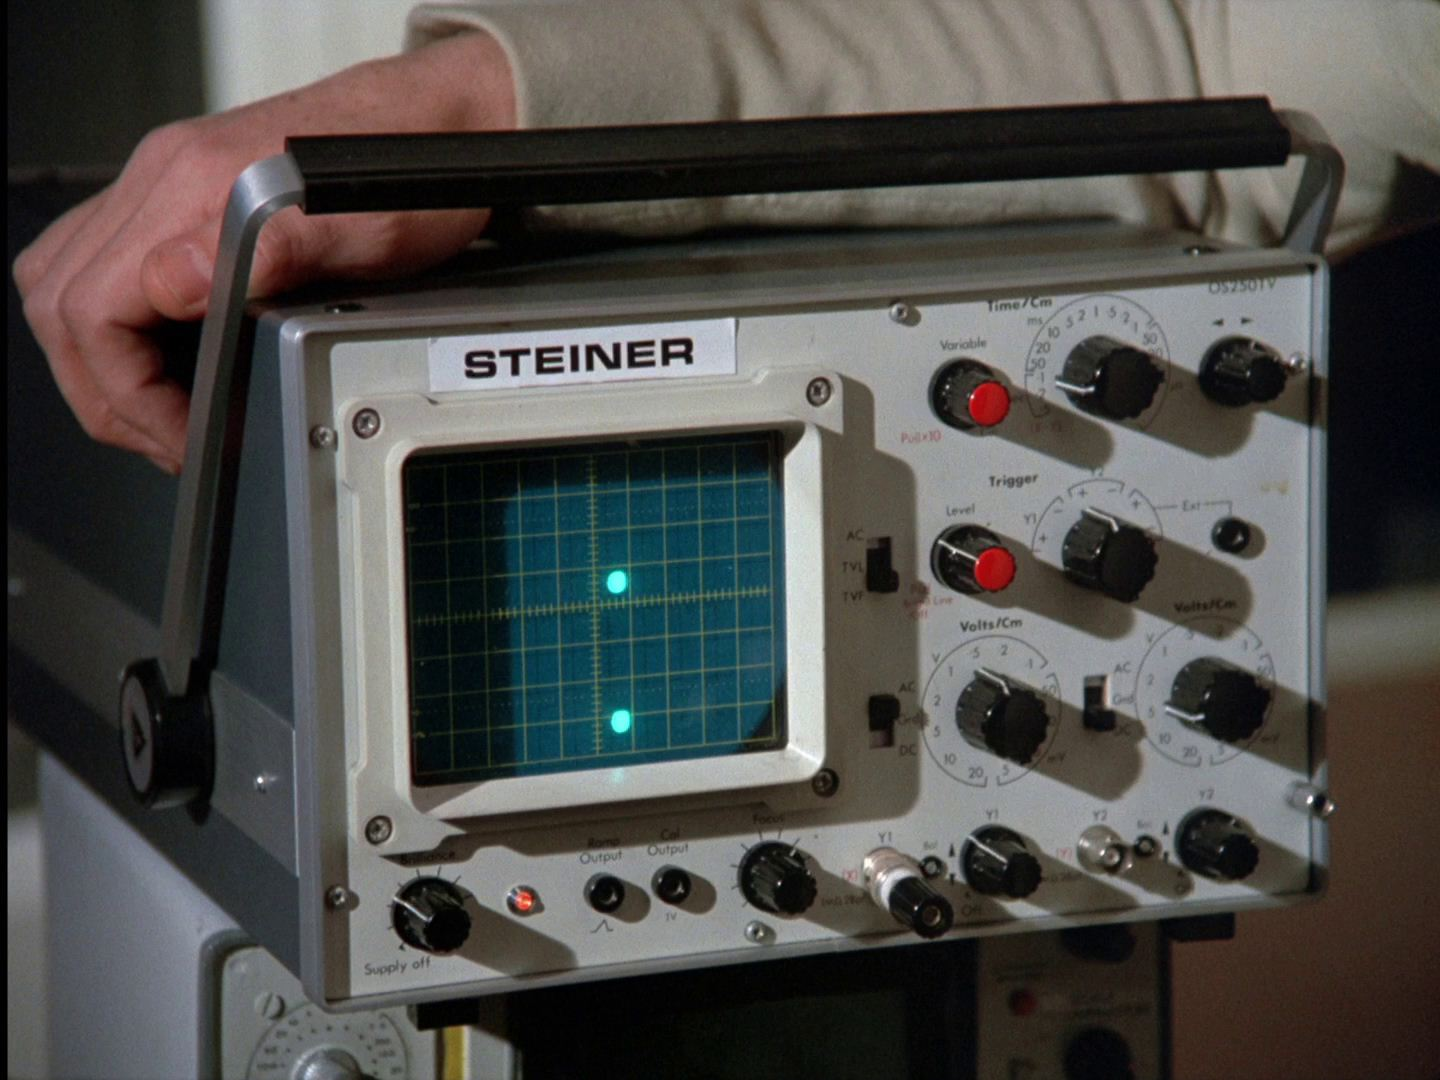 Oscilloscopes Space 1999 Continuity Guide Oscilloscope Control Pannel In Breakaway Matter Of Life And Death Guardian Piri Are Used To Monitor Brain Waves The Unit Monitoring Steiners Is A